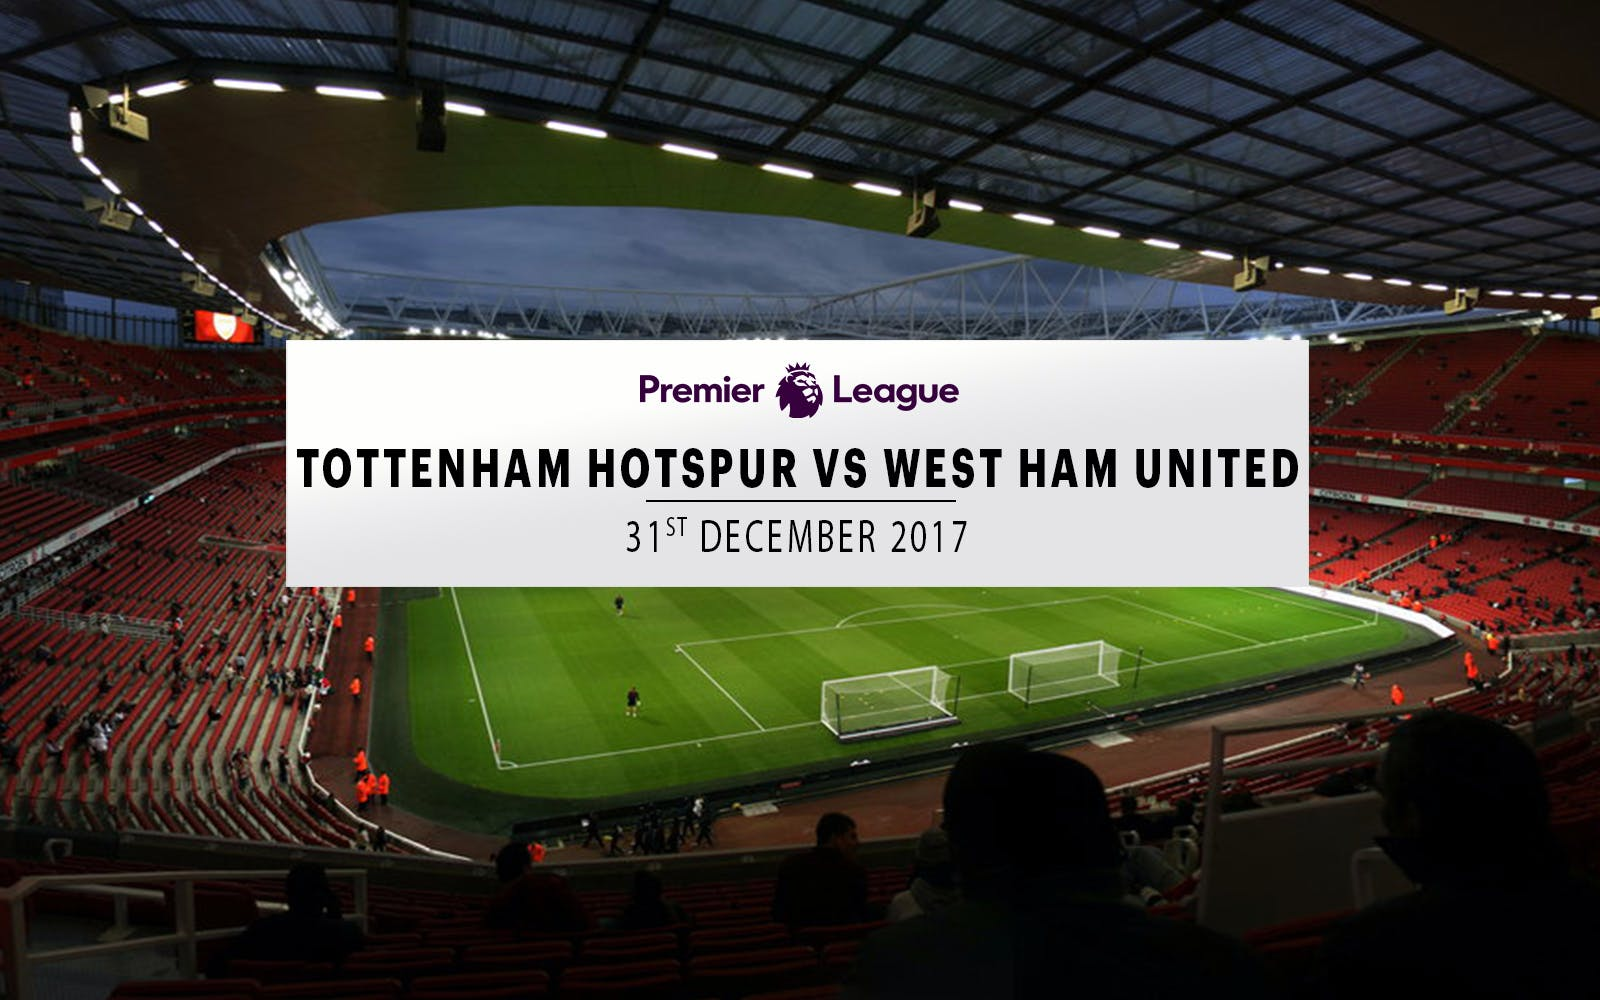 tottenham hotspur vs west ham united - 31st december 2017-1